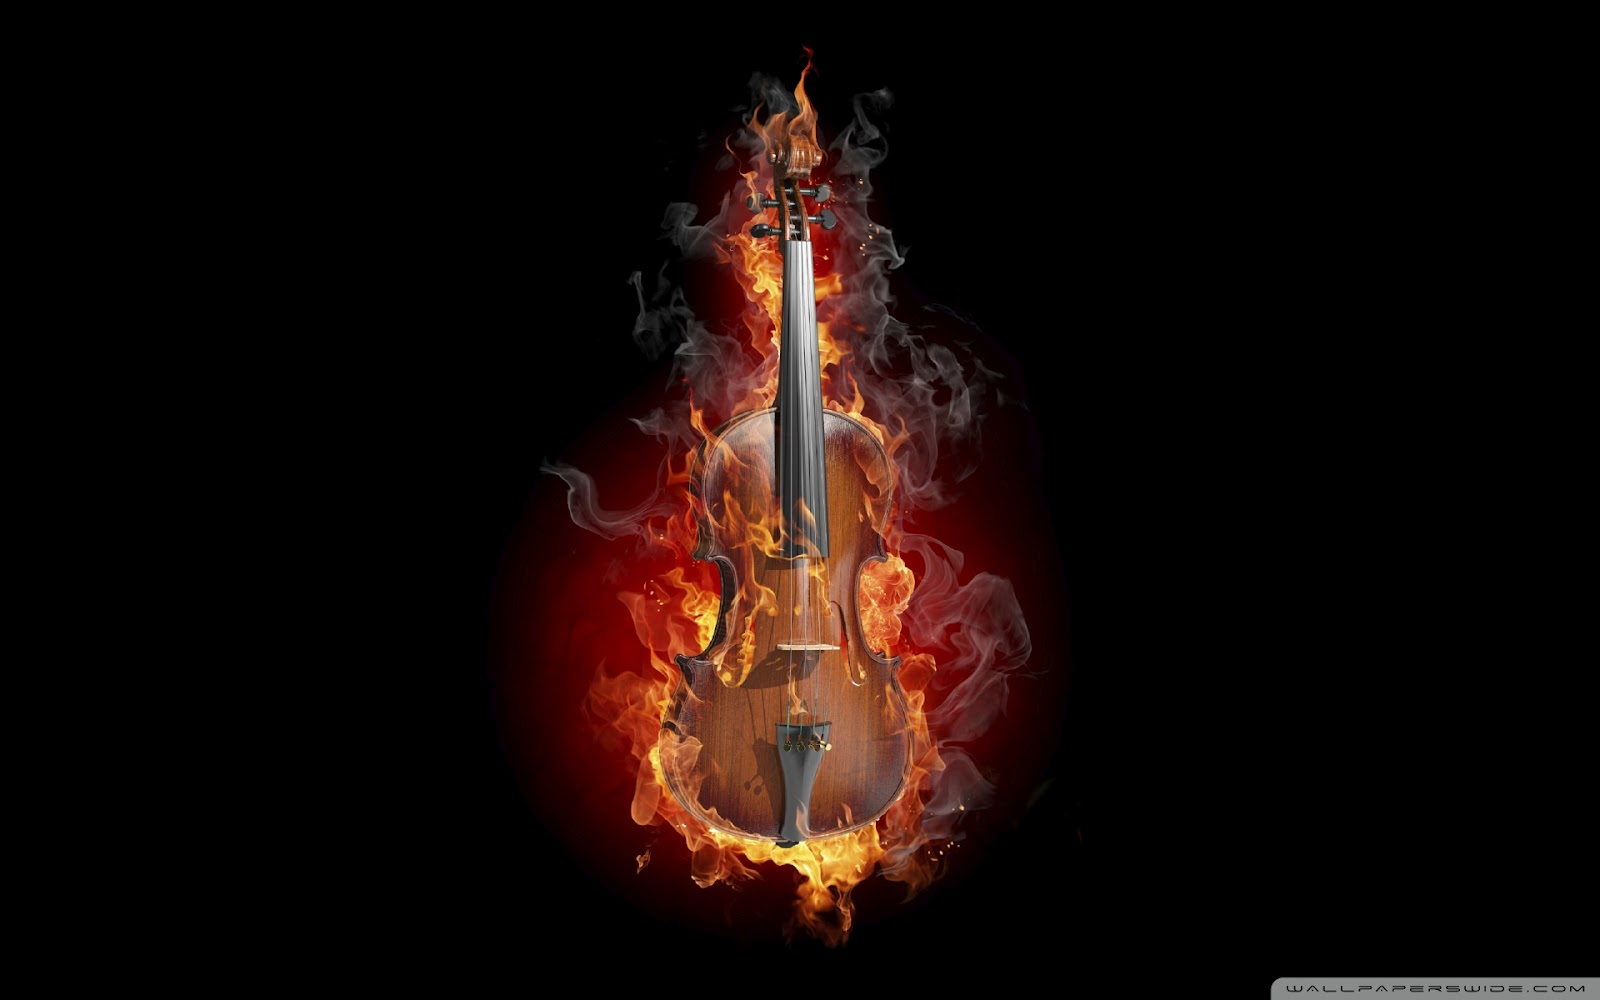 Burning Violin Wallpaper Music Wallpapers